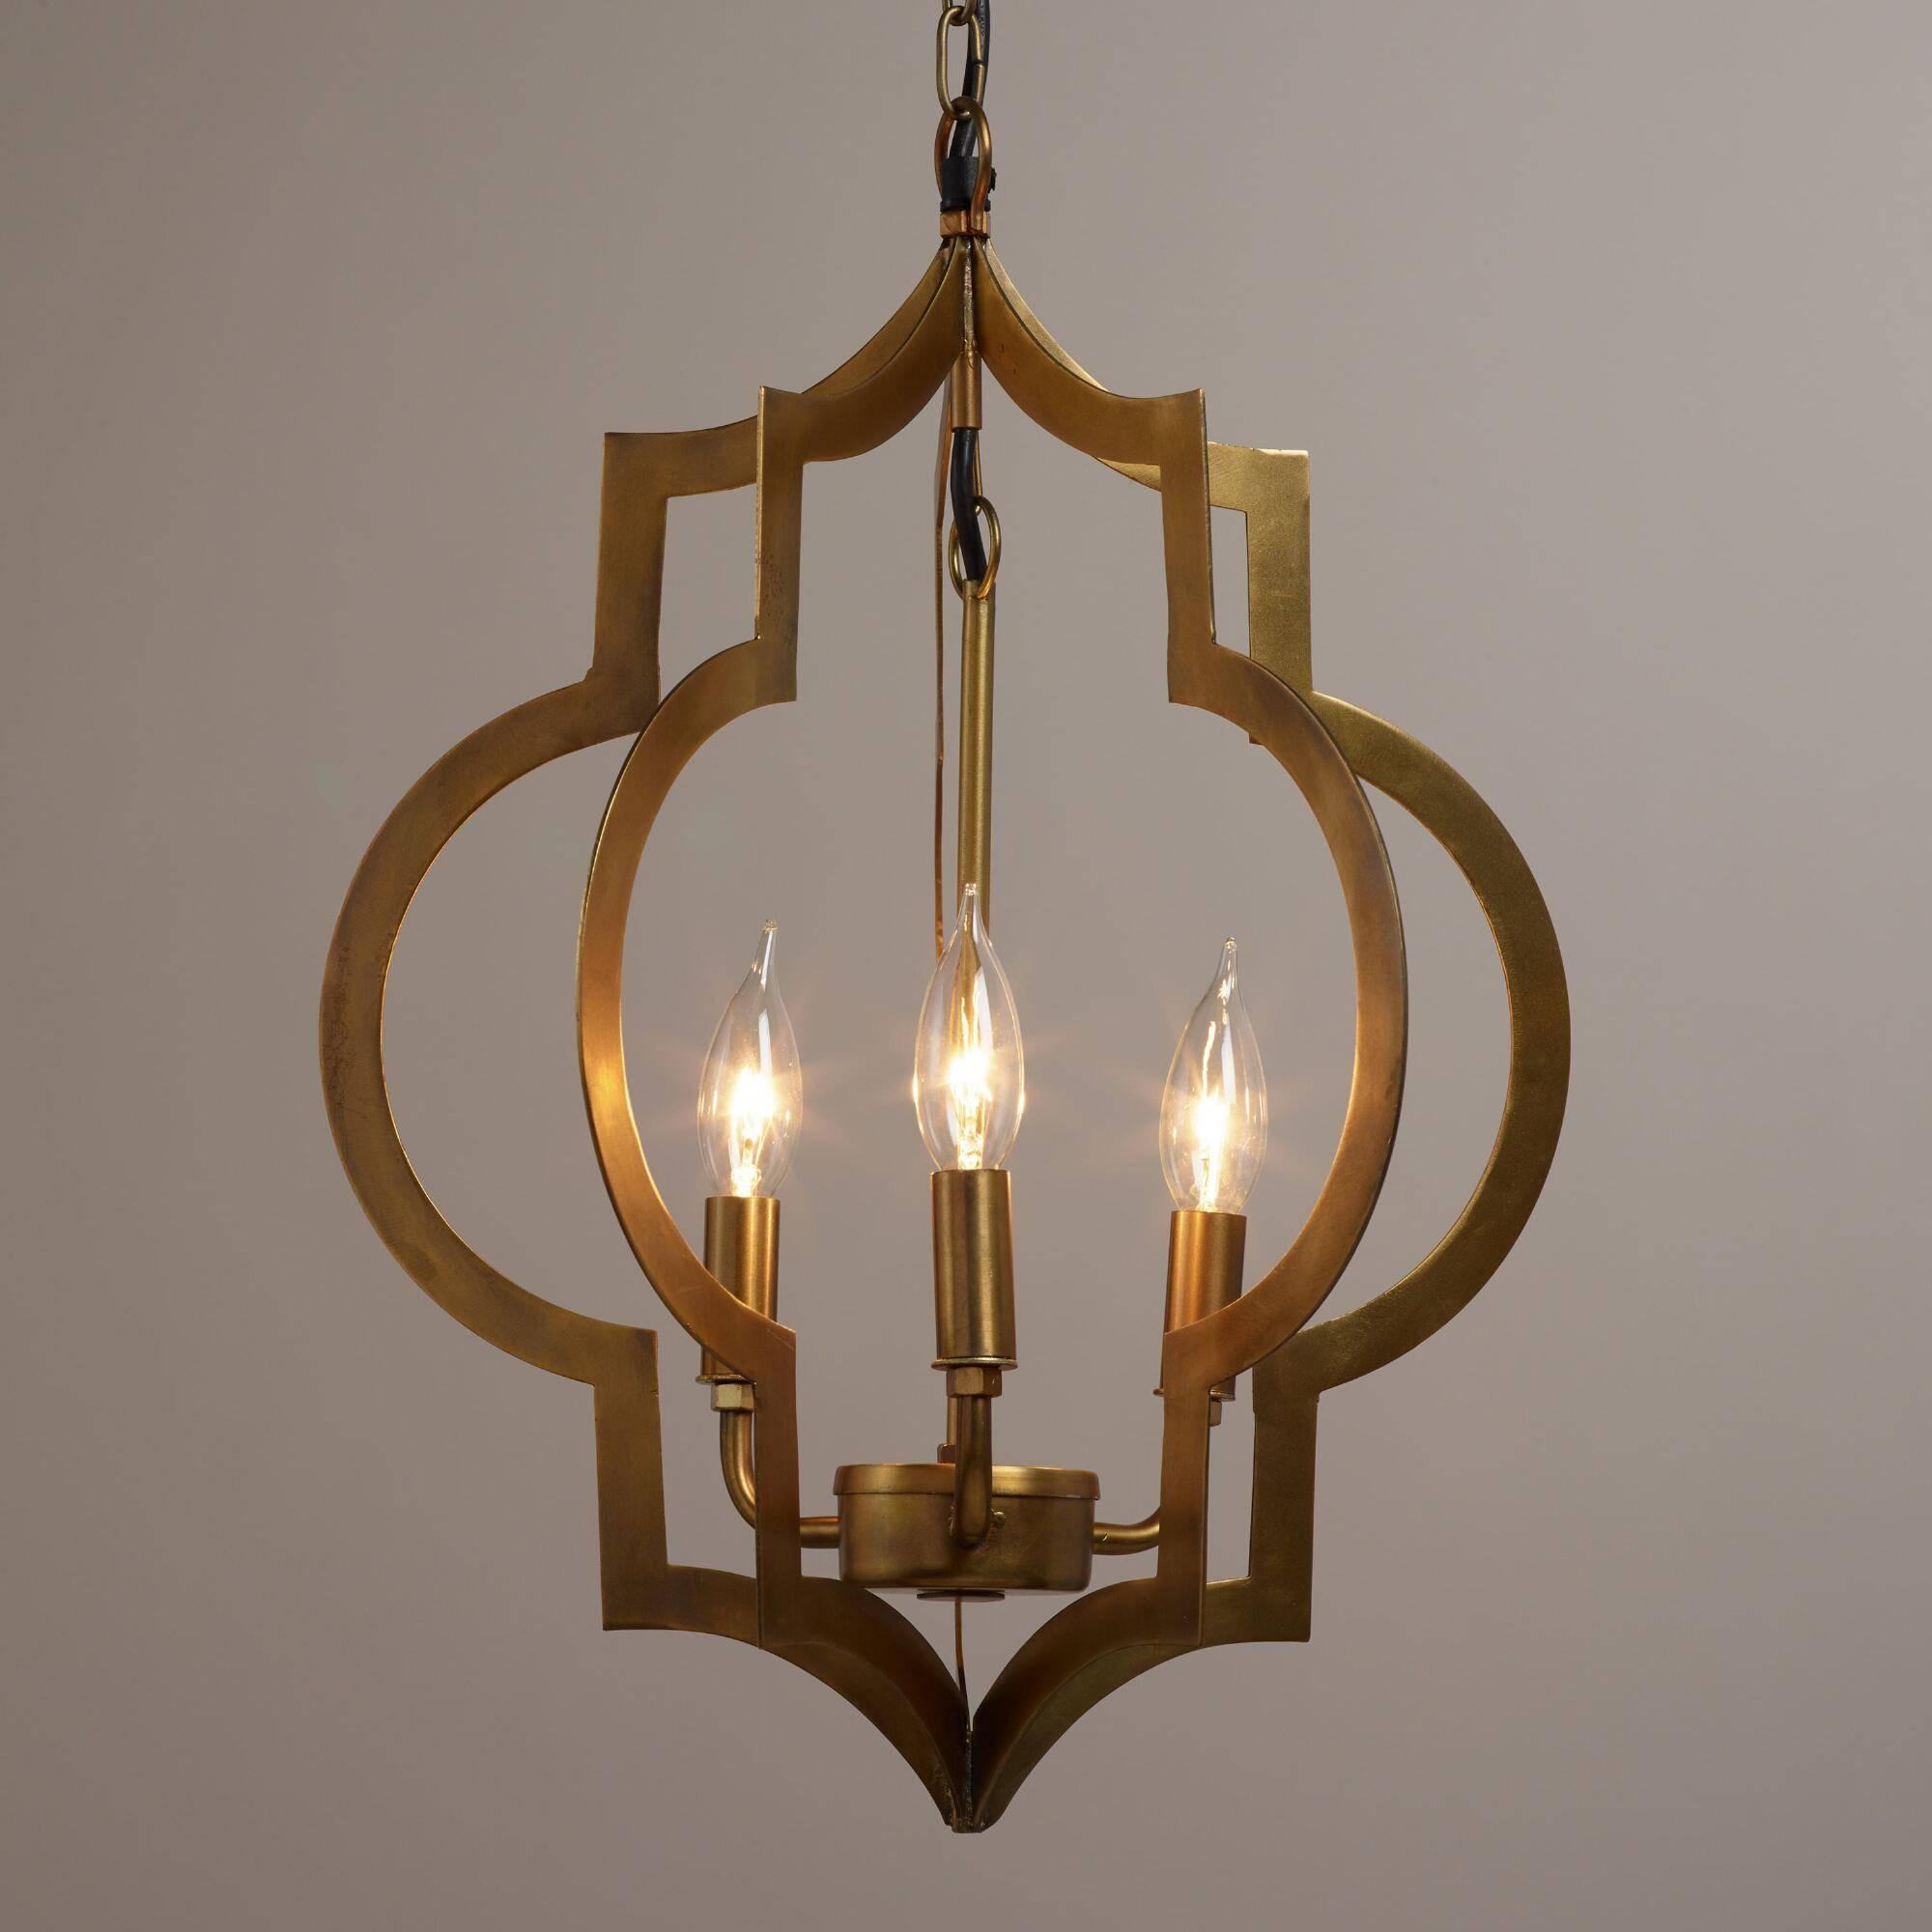 Best Moroccan Pendant Lights 23 With Additional Glass Orb Pendant within Glass Orb Pendant Lights (Image 5 of 15)